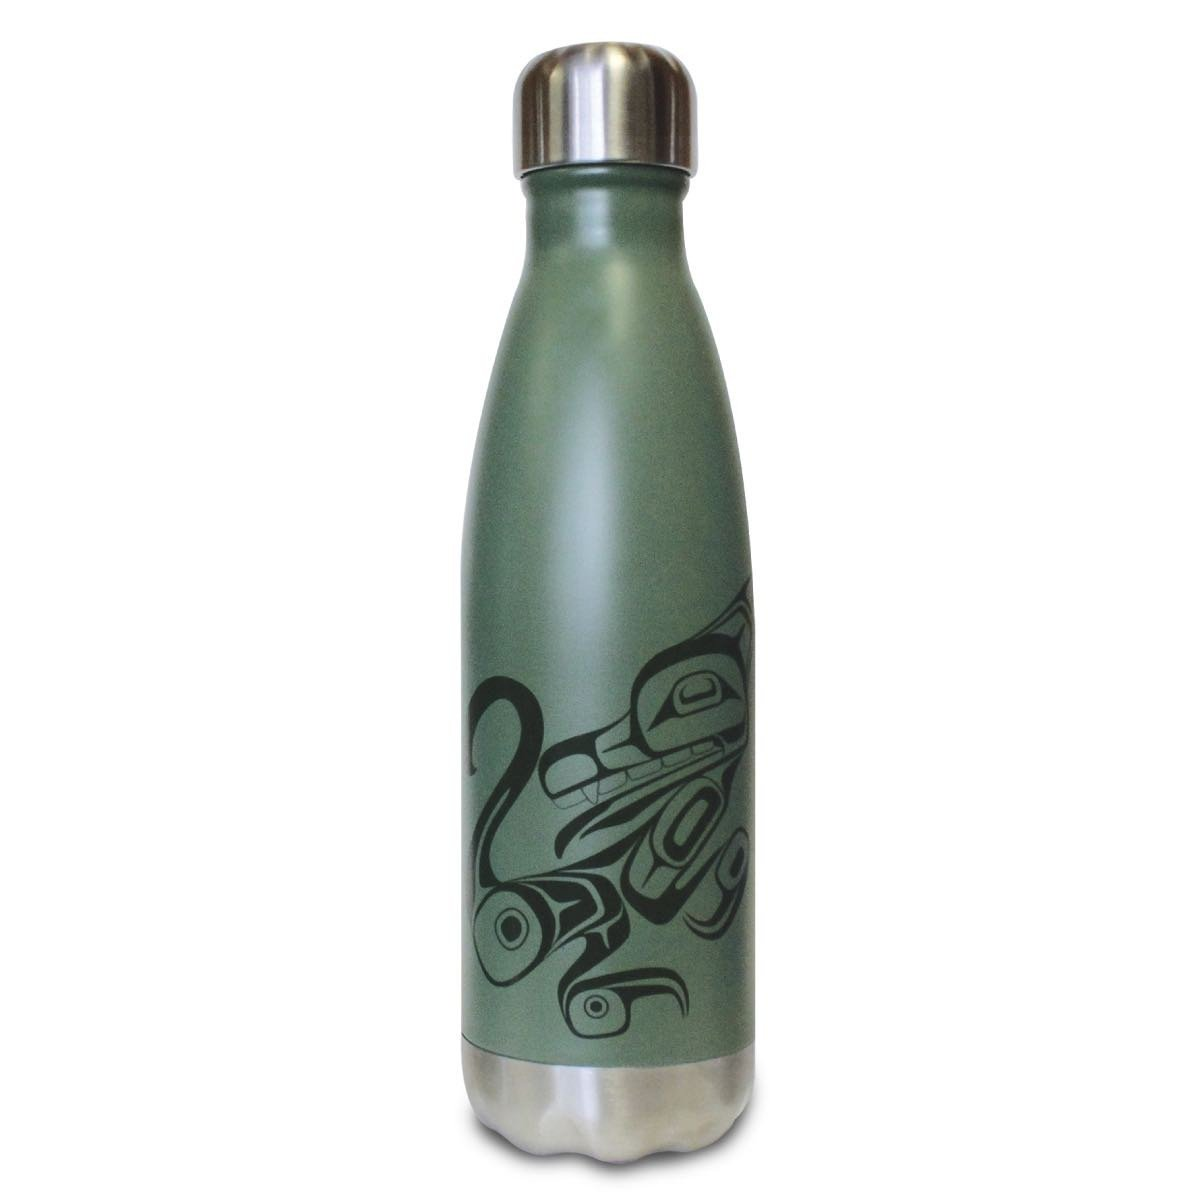 Medium Insulated Stainless Steel Bottle by Phil Gray, Tsimshian